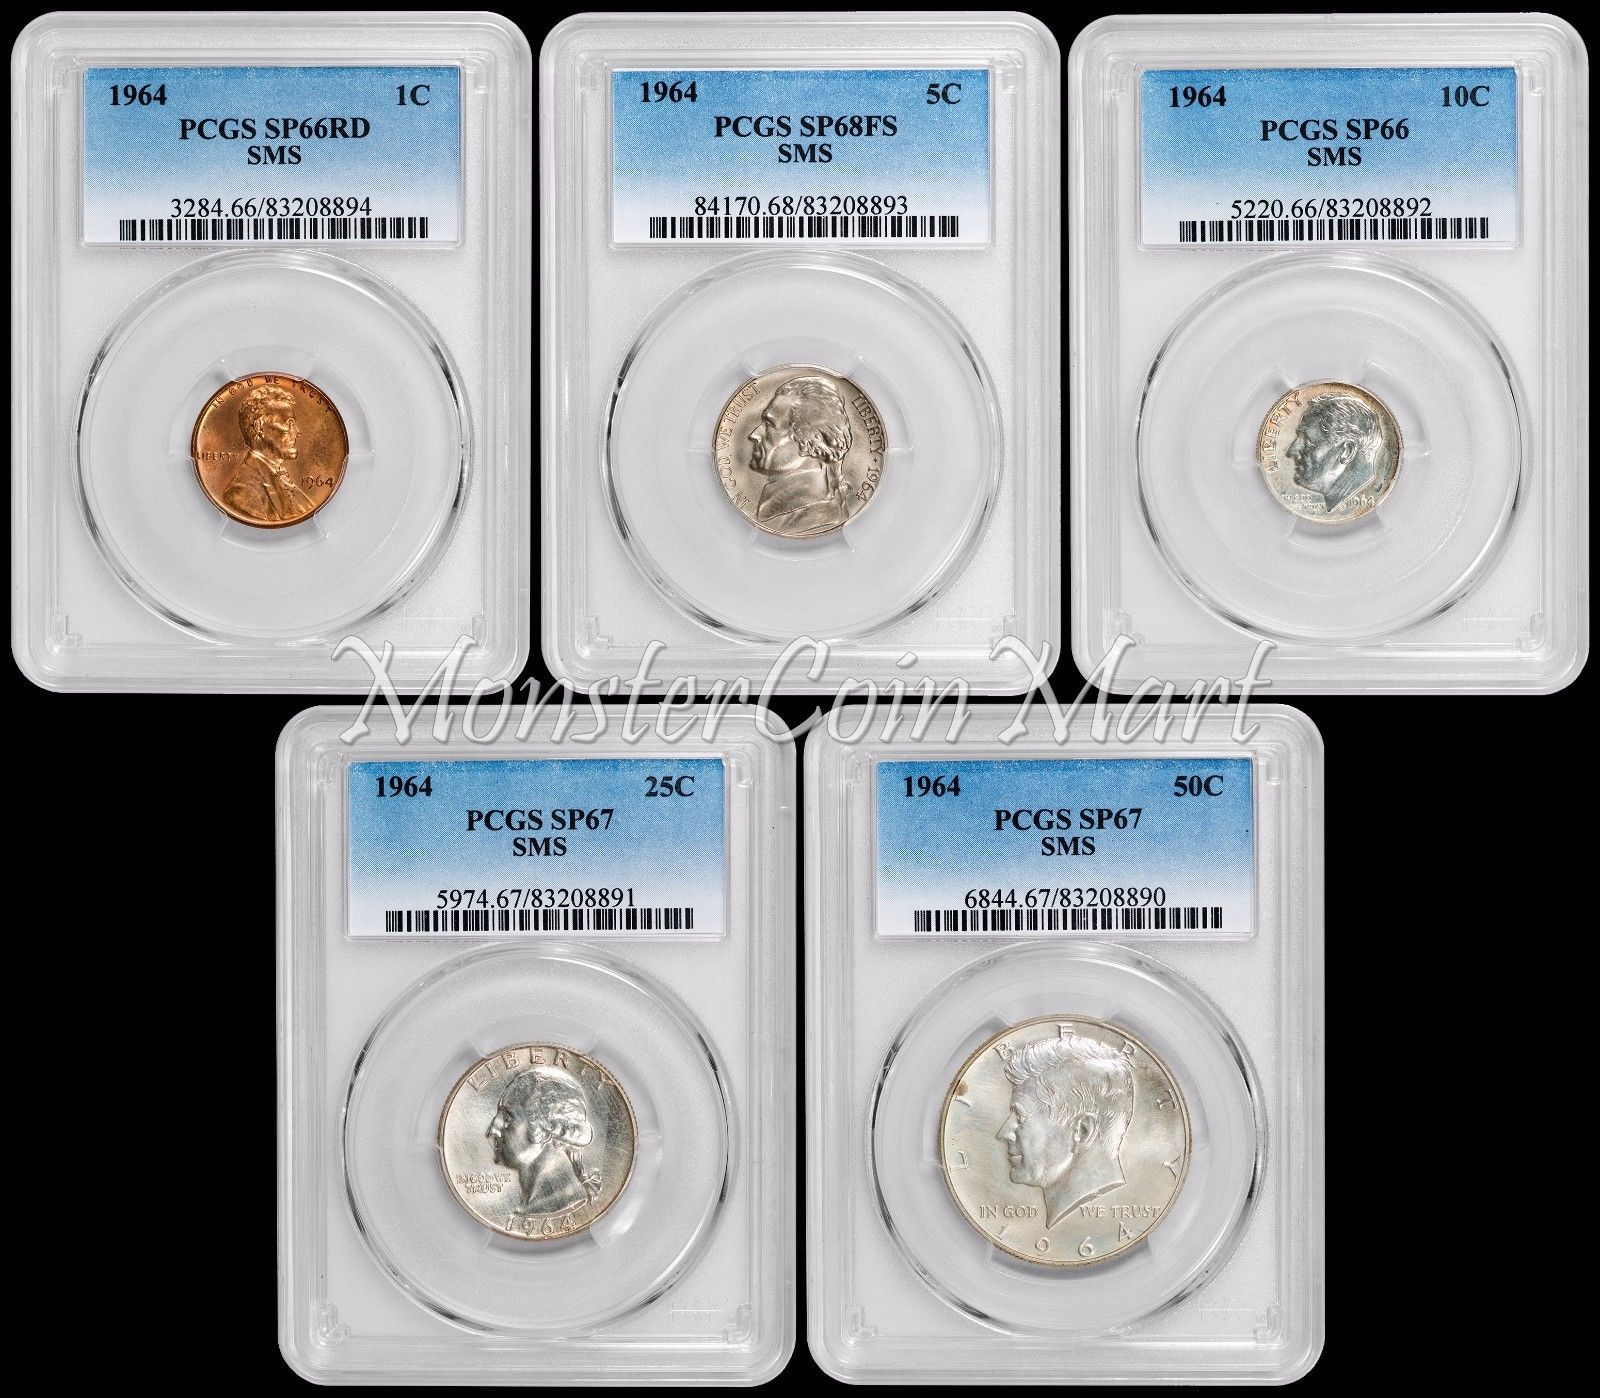 1964 SMS (Special Mint Set) Coins Complete High Grade Set (PCGS